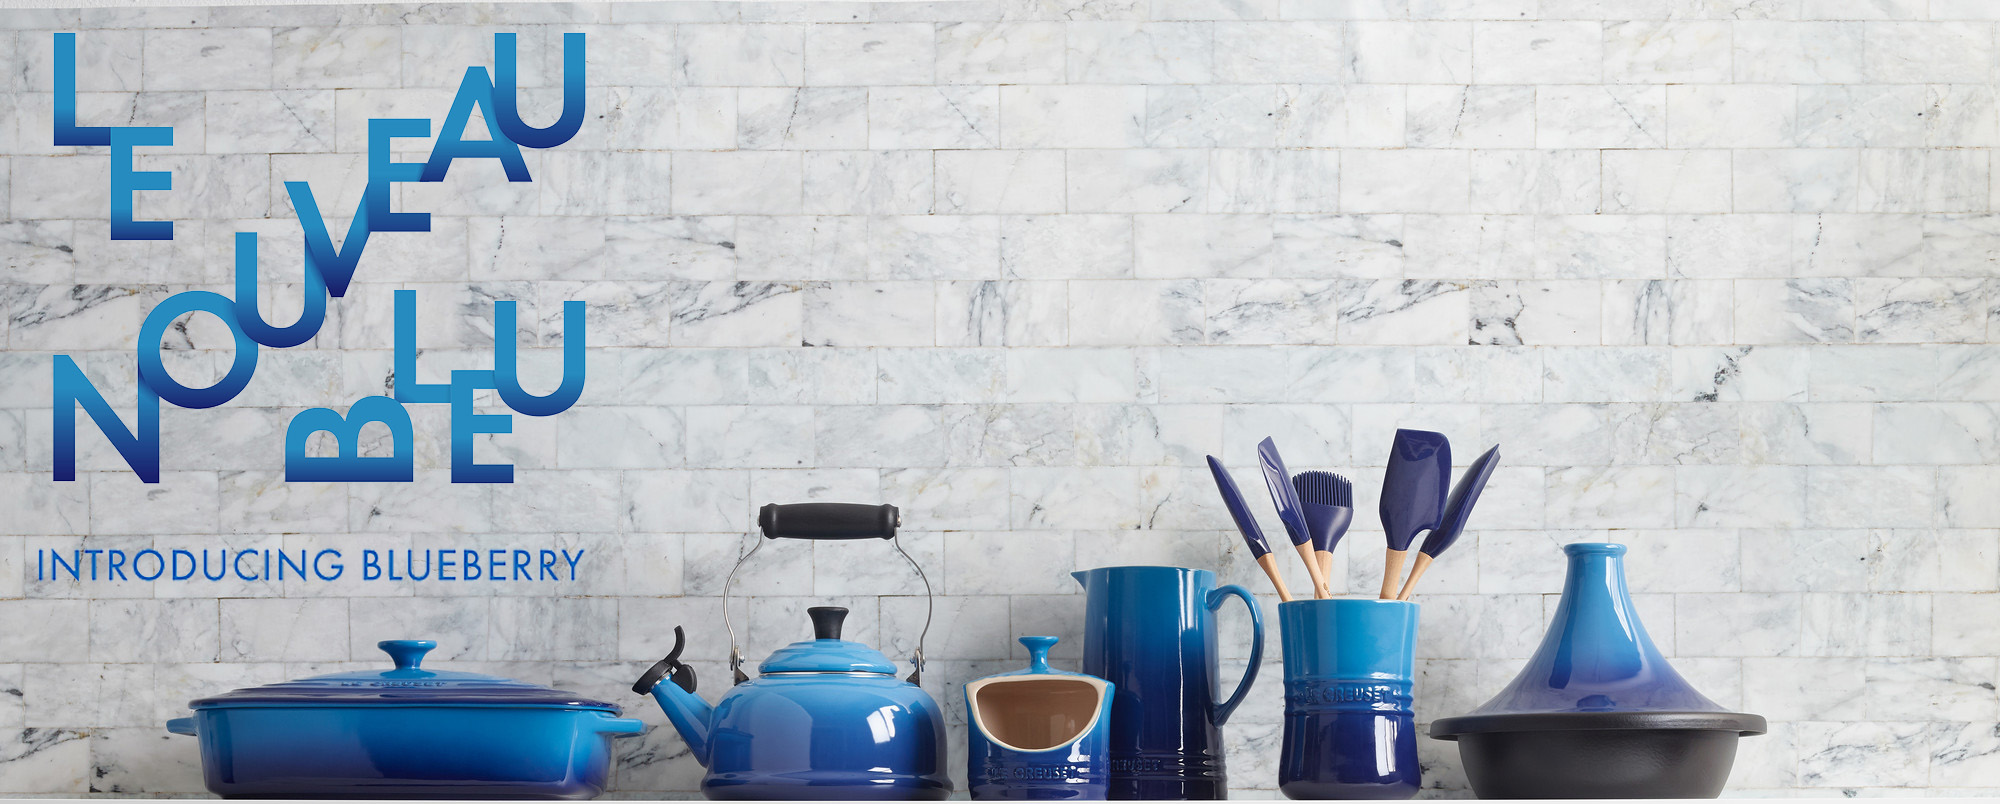 Introducing Le Creuset Blueberry